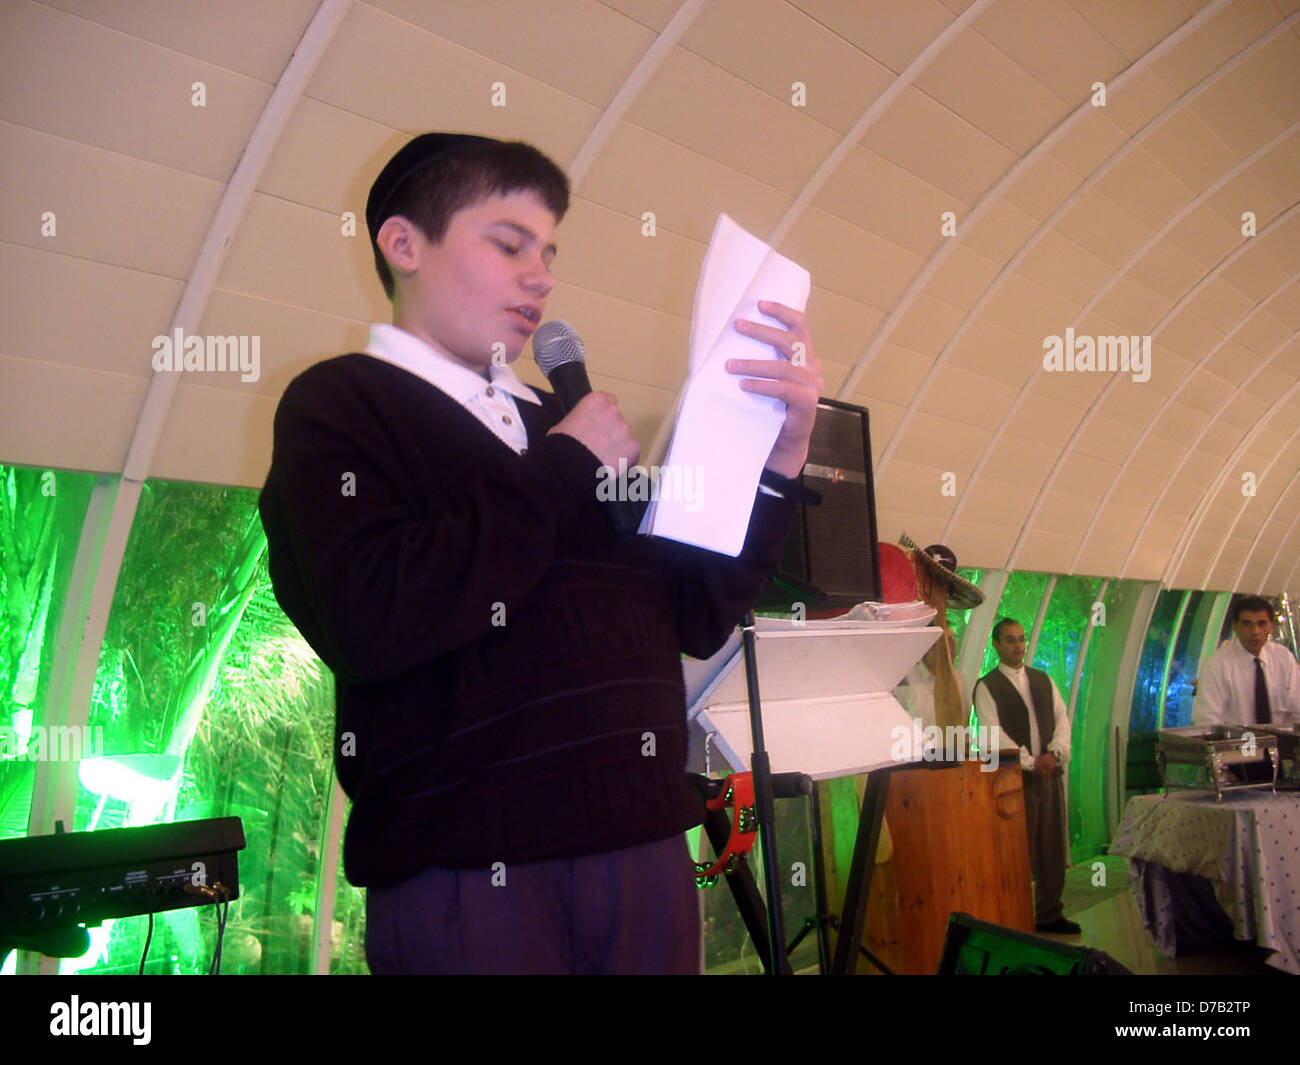 bar mitzvah boy - Stock Image